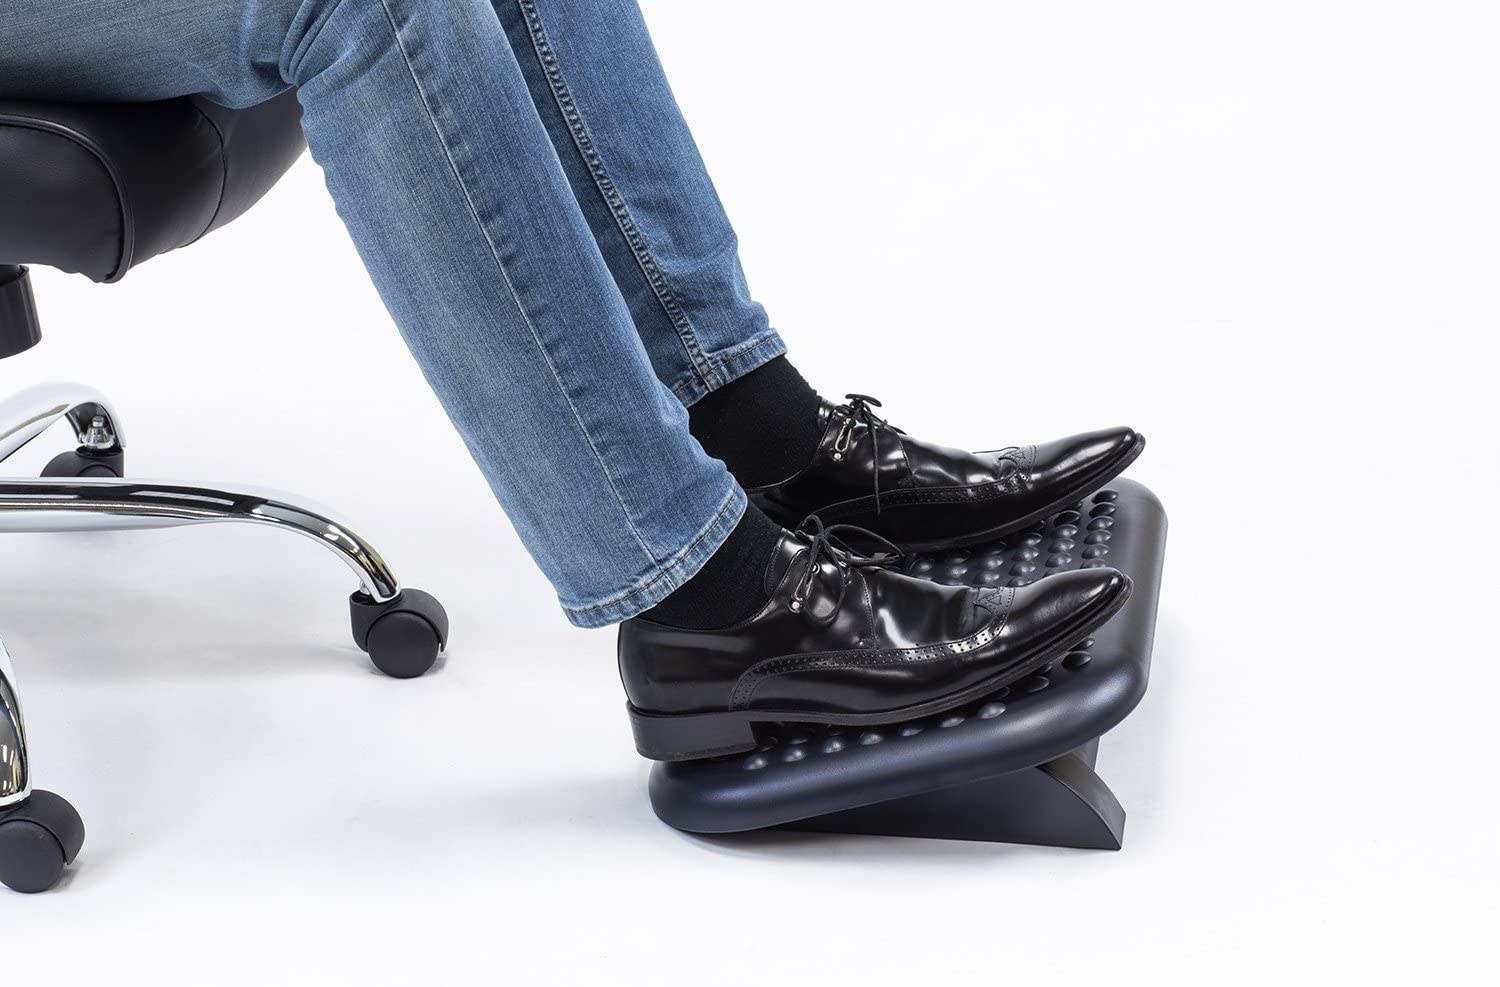 A person resting their feet on an adjustable foot rest with a bumpy surface